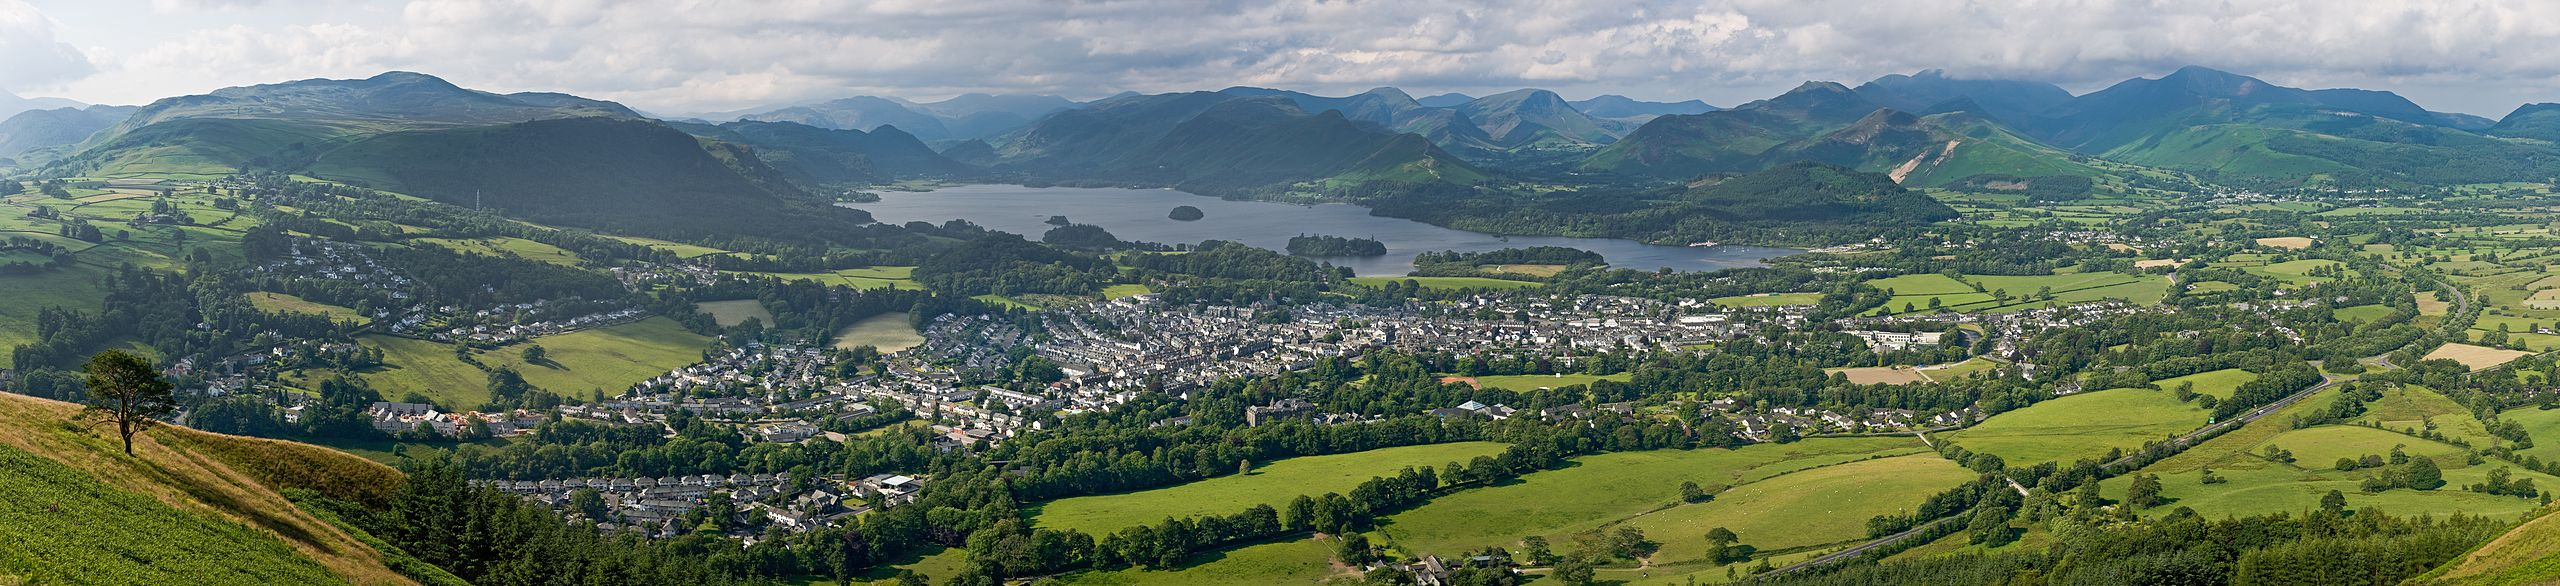 A panoramic view of Keswick, Derwentwater and the surrounding fells, as viewed from Latrigg north of the town. Photo by DAVID ILIFF. License: CC-BY-SA 3.0